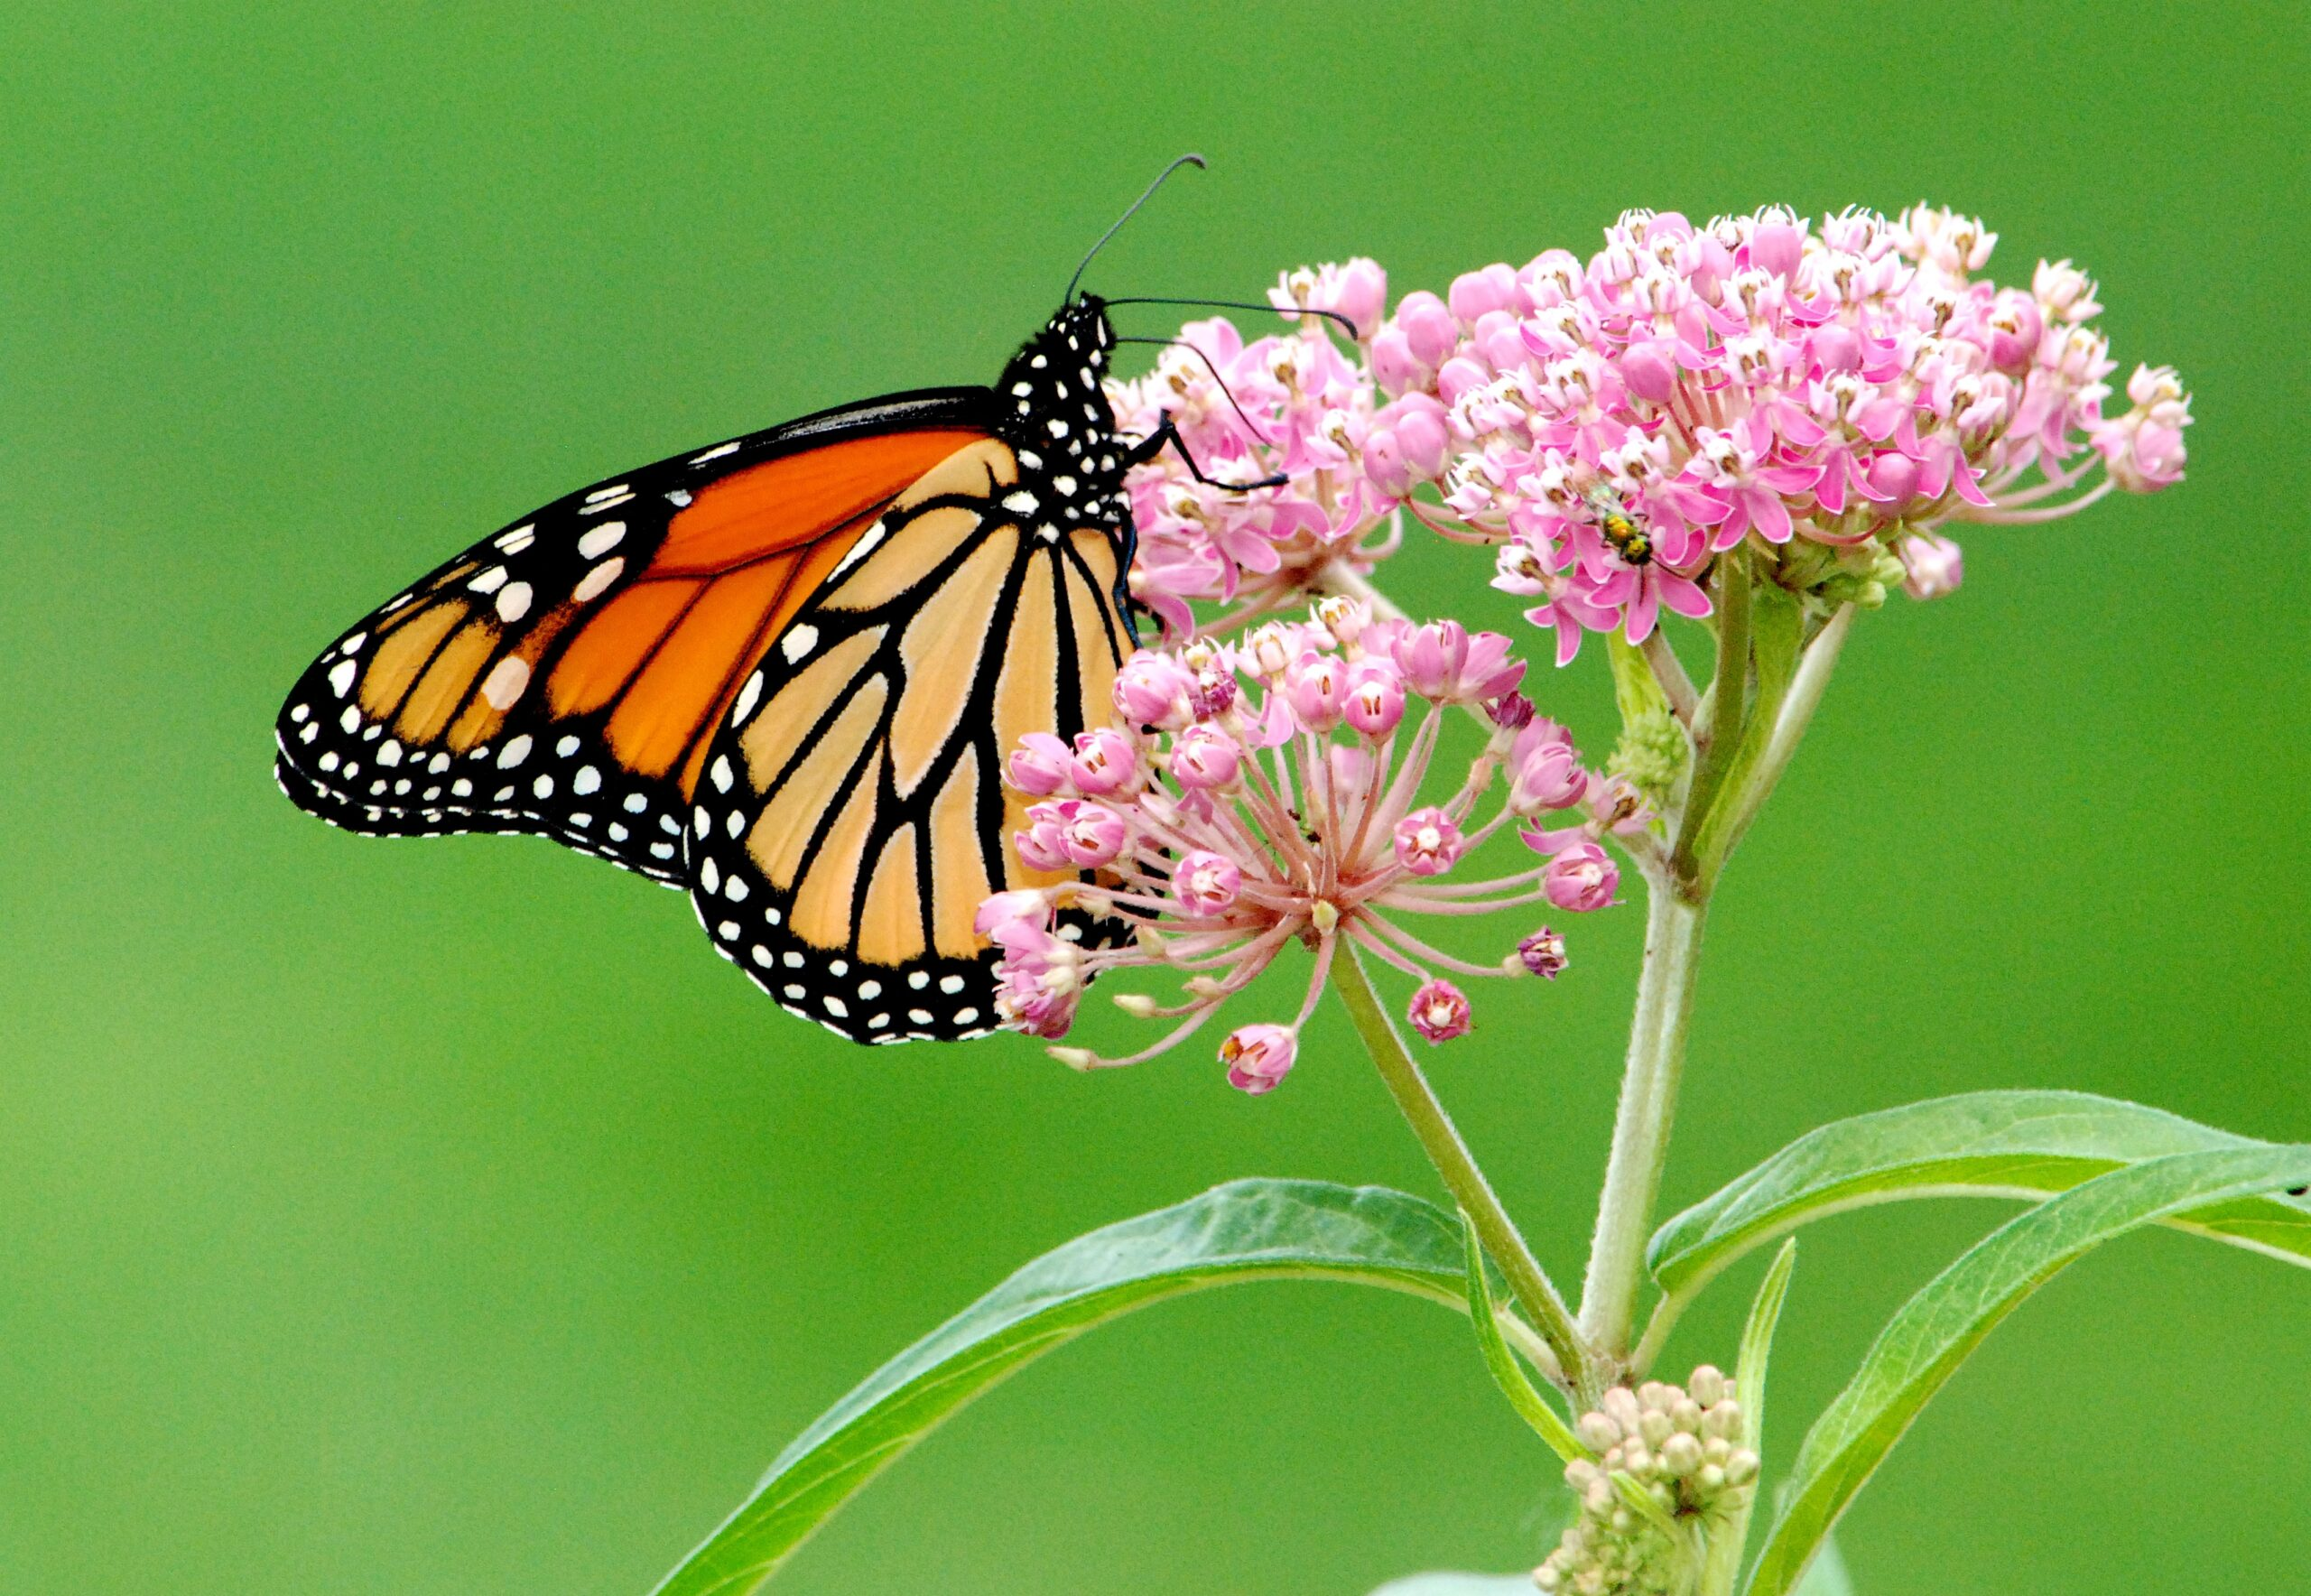 Photo of a monarch butterfly perched on a flower